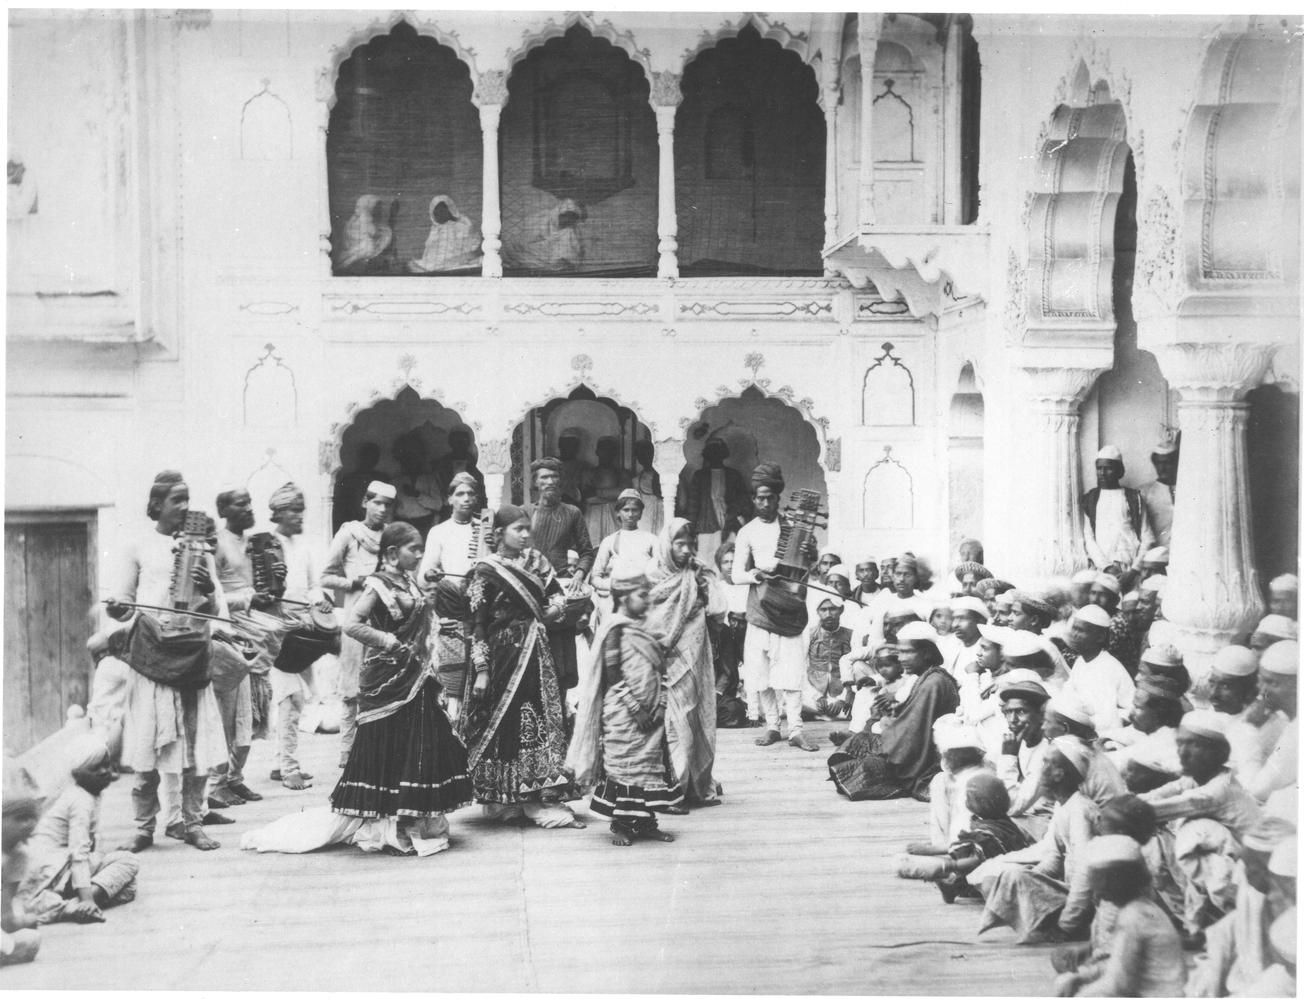 A photograph of several dancing girls and musicians performing to a crowd in a courtyard